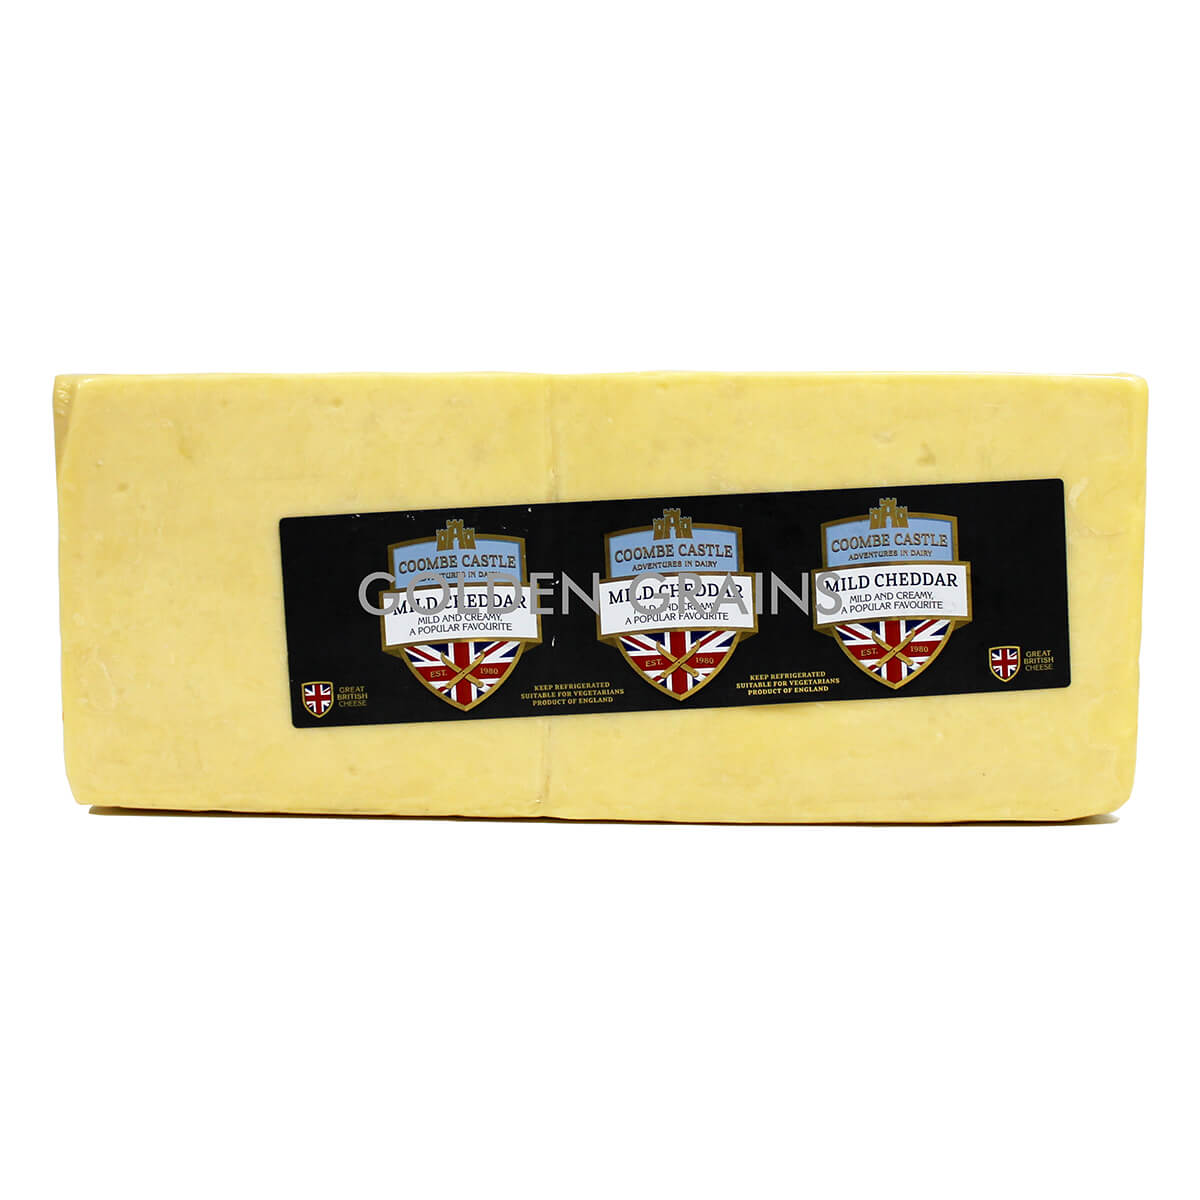 Golden Grains Dubai Export - Coombe Castle Cheese - Mild Cheddar - Front.jpg